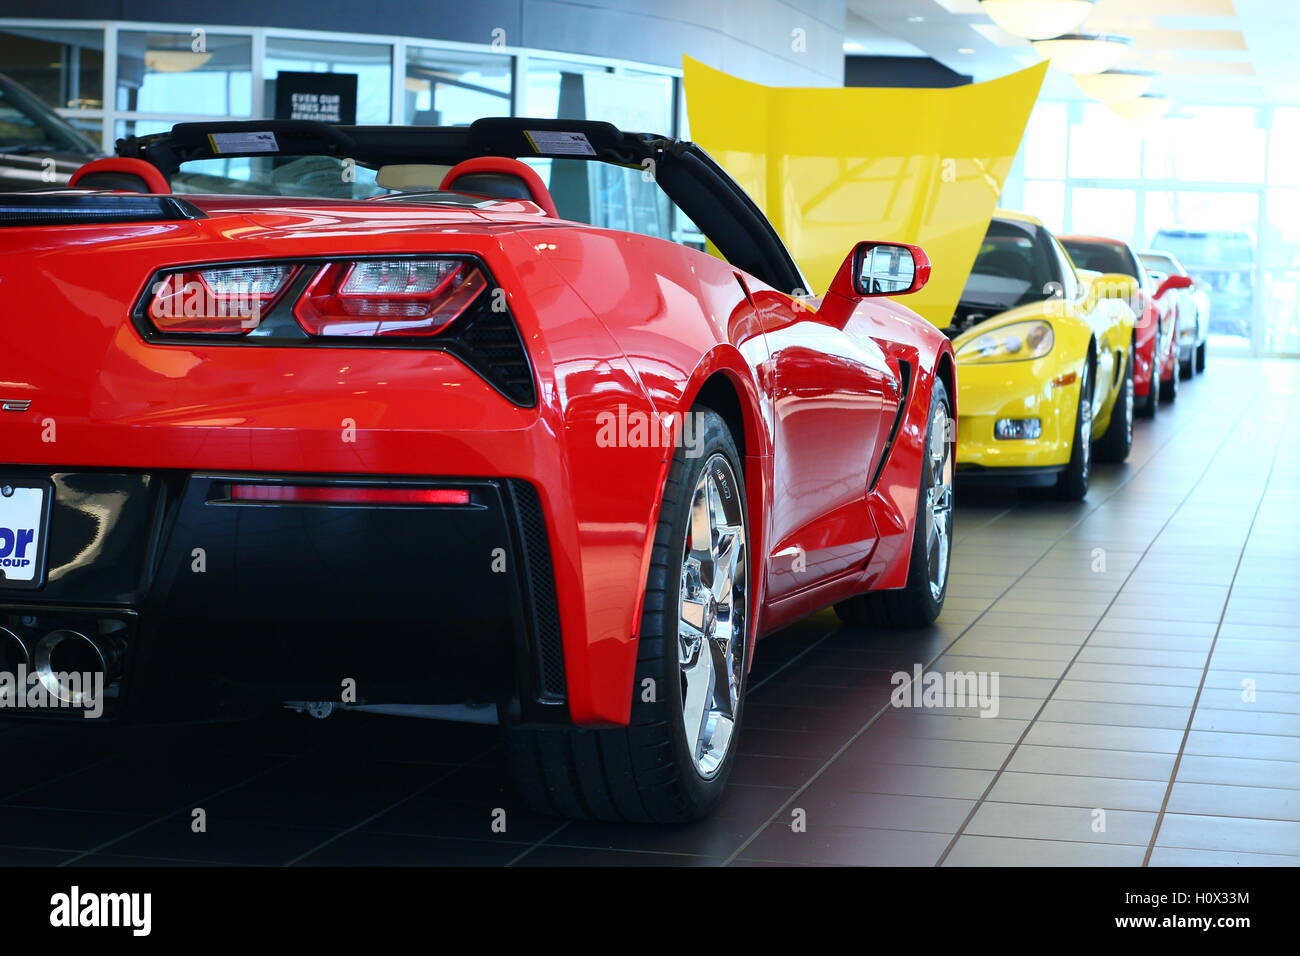 row of chevy corvette sports cars sit on display in dealership showroom, waiting to be sold Stock Photo